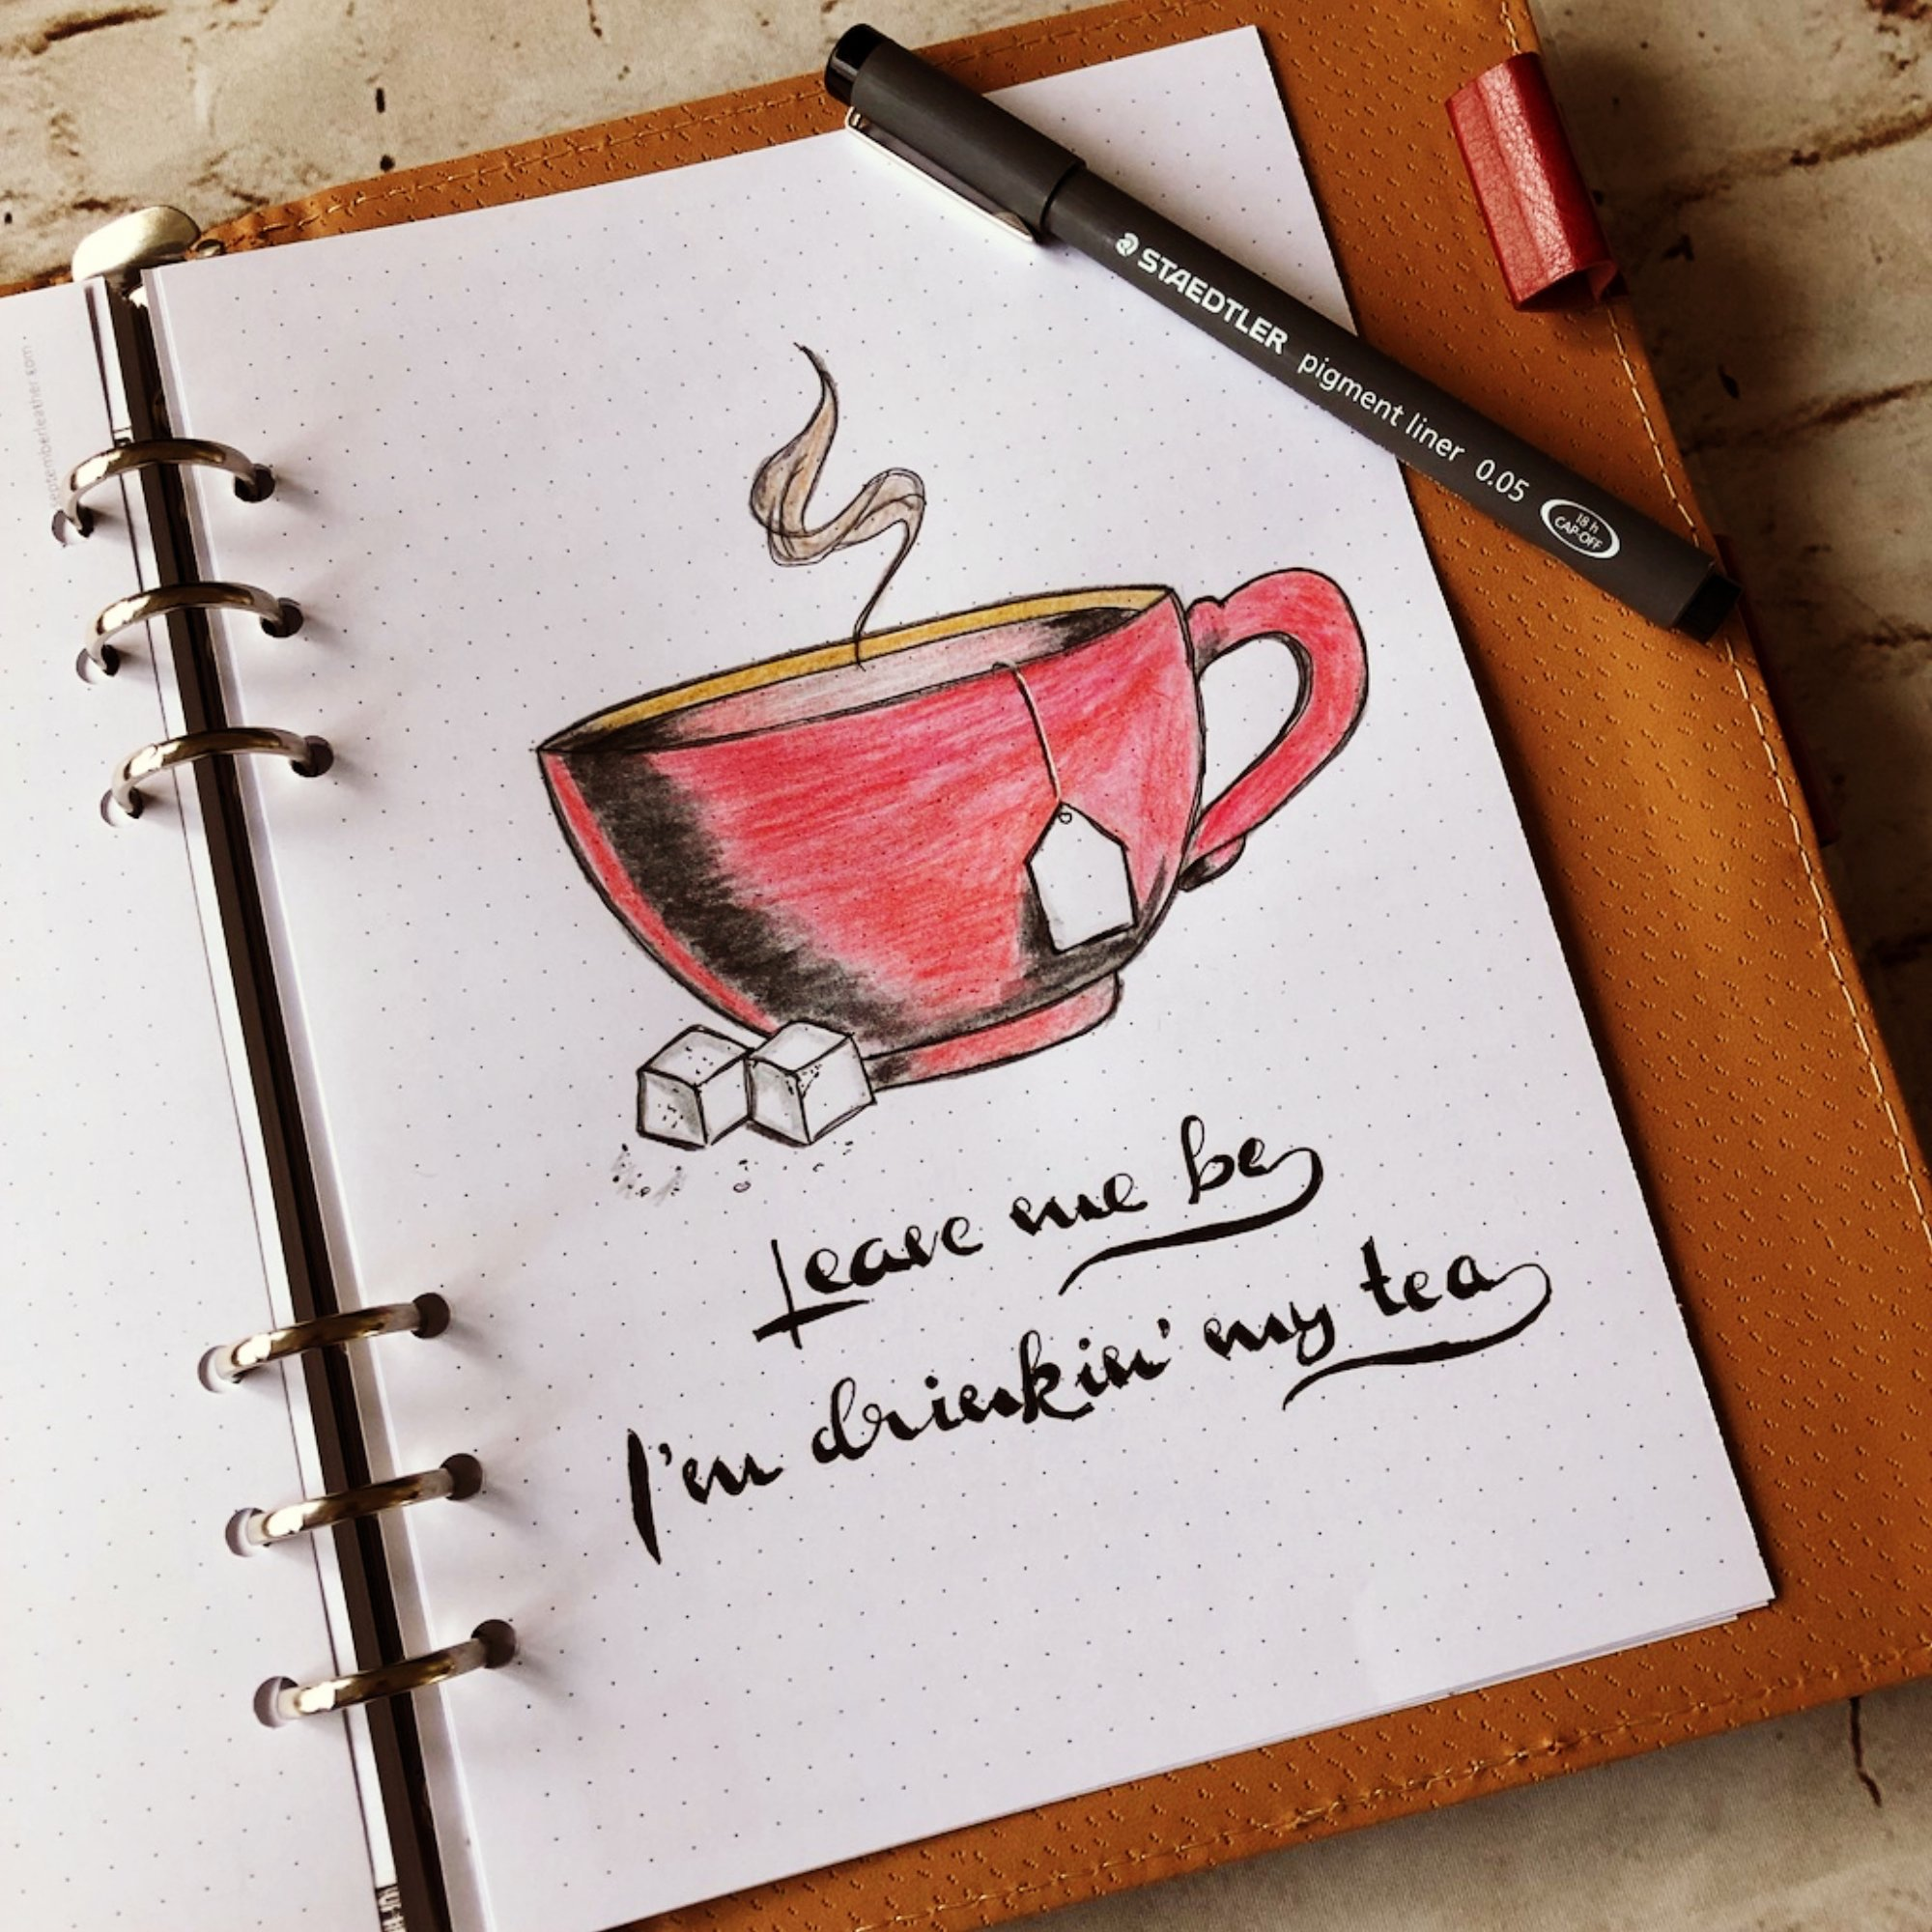 Creative journaling - Quote #3 - Leave me be I'm drinkin' my tea - itstartswithacoffee.com #creativejournaling #quote #tea